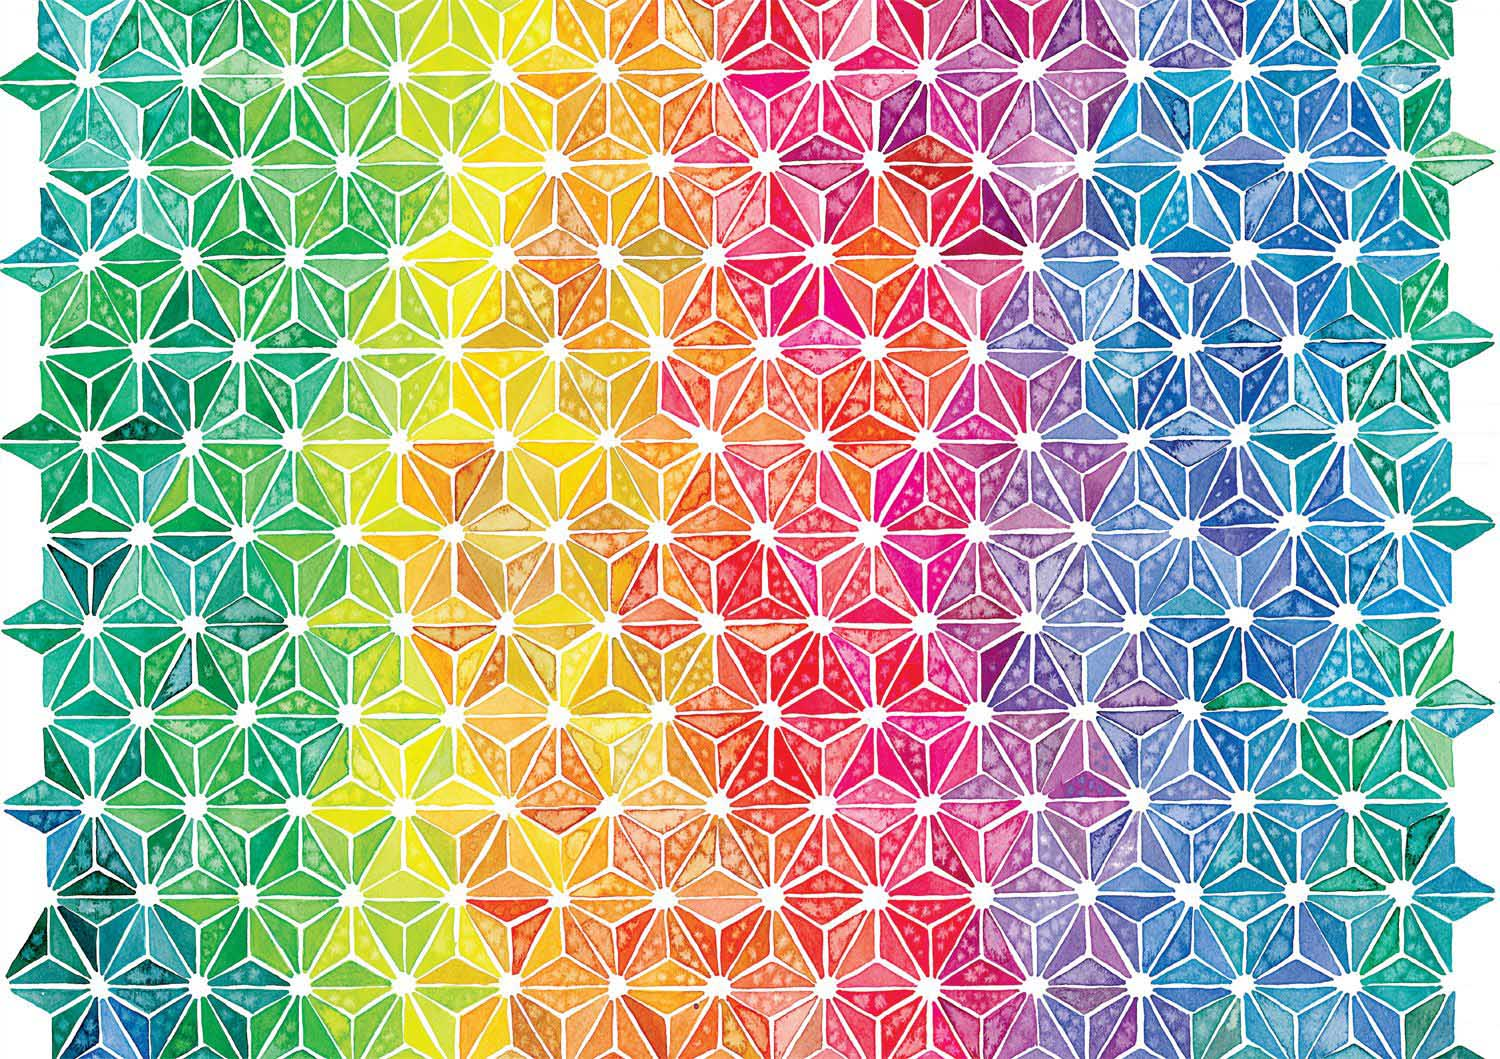 Geometric Abstract Jigsaw Puzzle